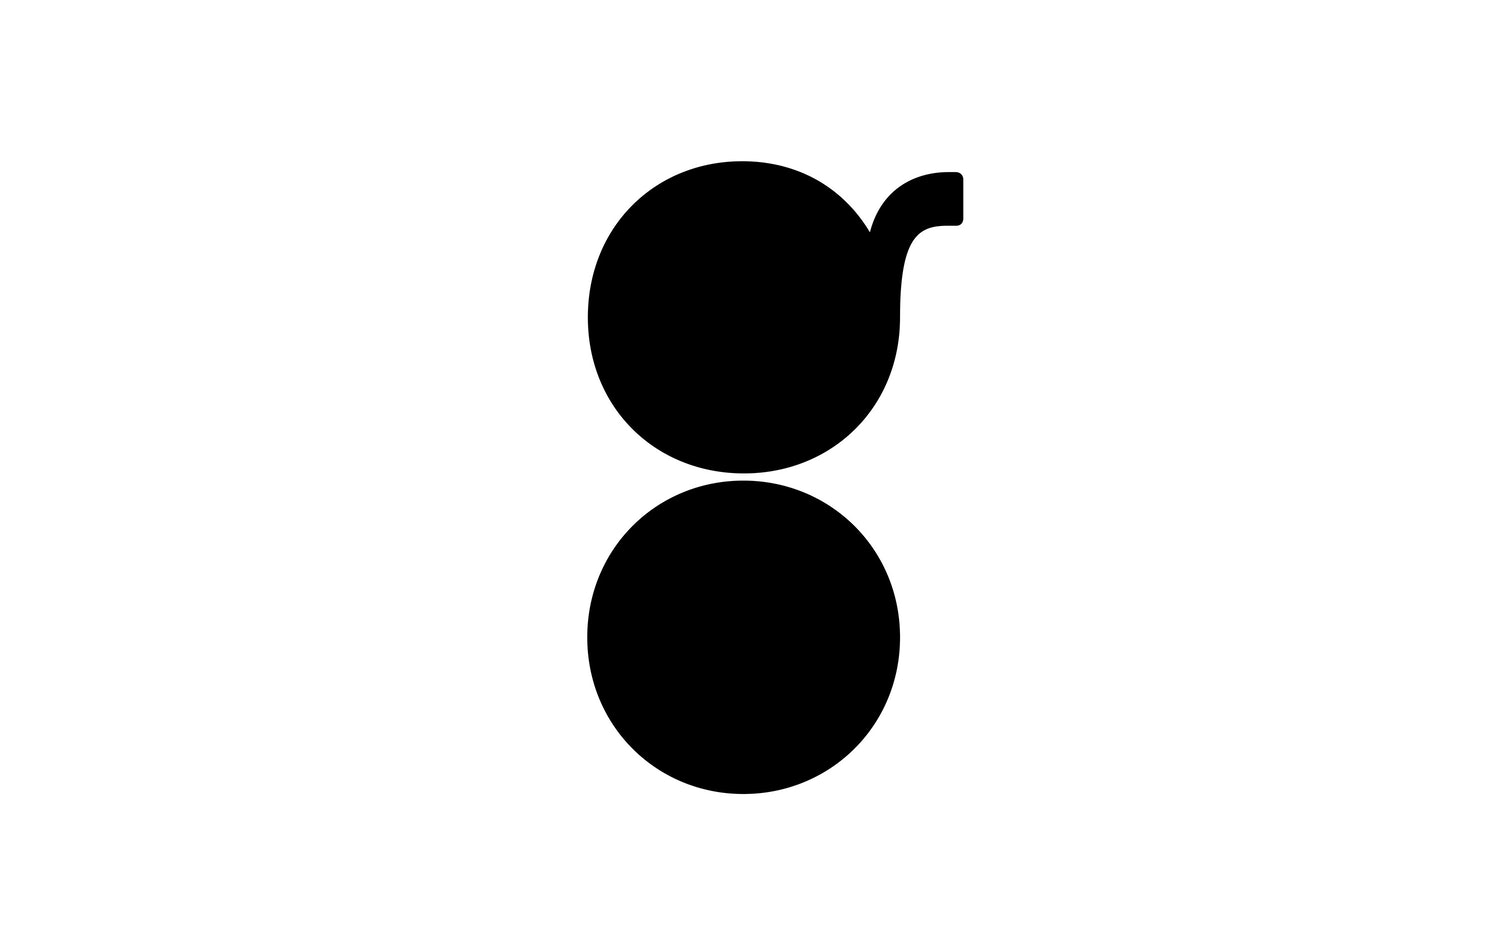 Paula Scher's new lower-case 'g' logo for Tender Greens. All images courtesy of Pentagram and Tender Greens